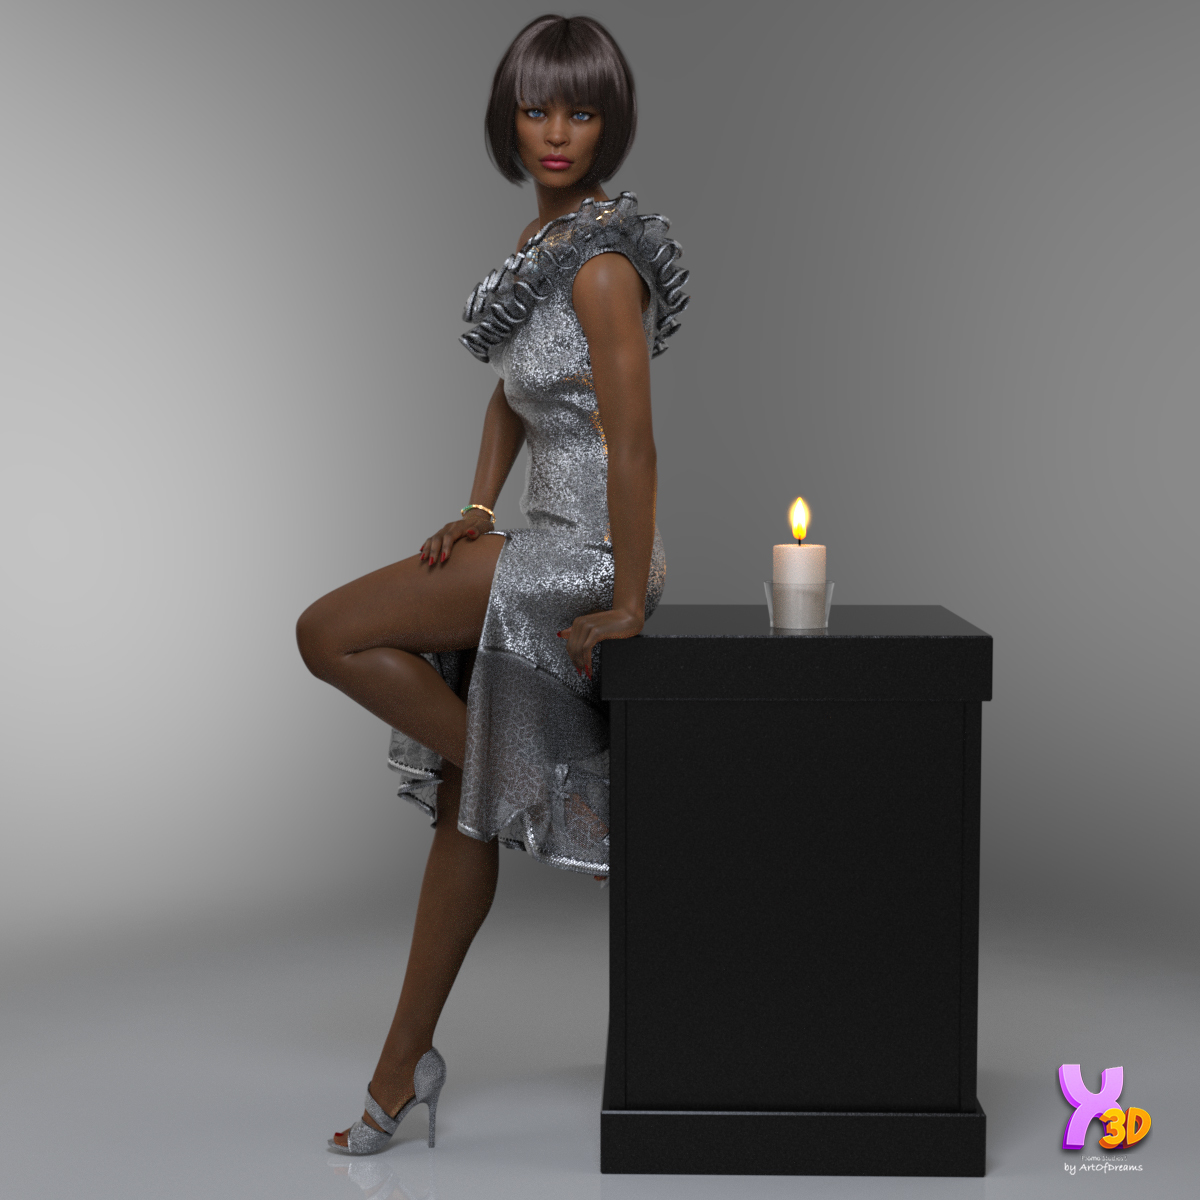 Charm Evening Cocktail Dress Outfit by ArtOfDreams